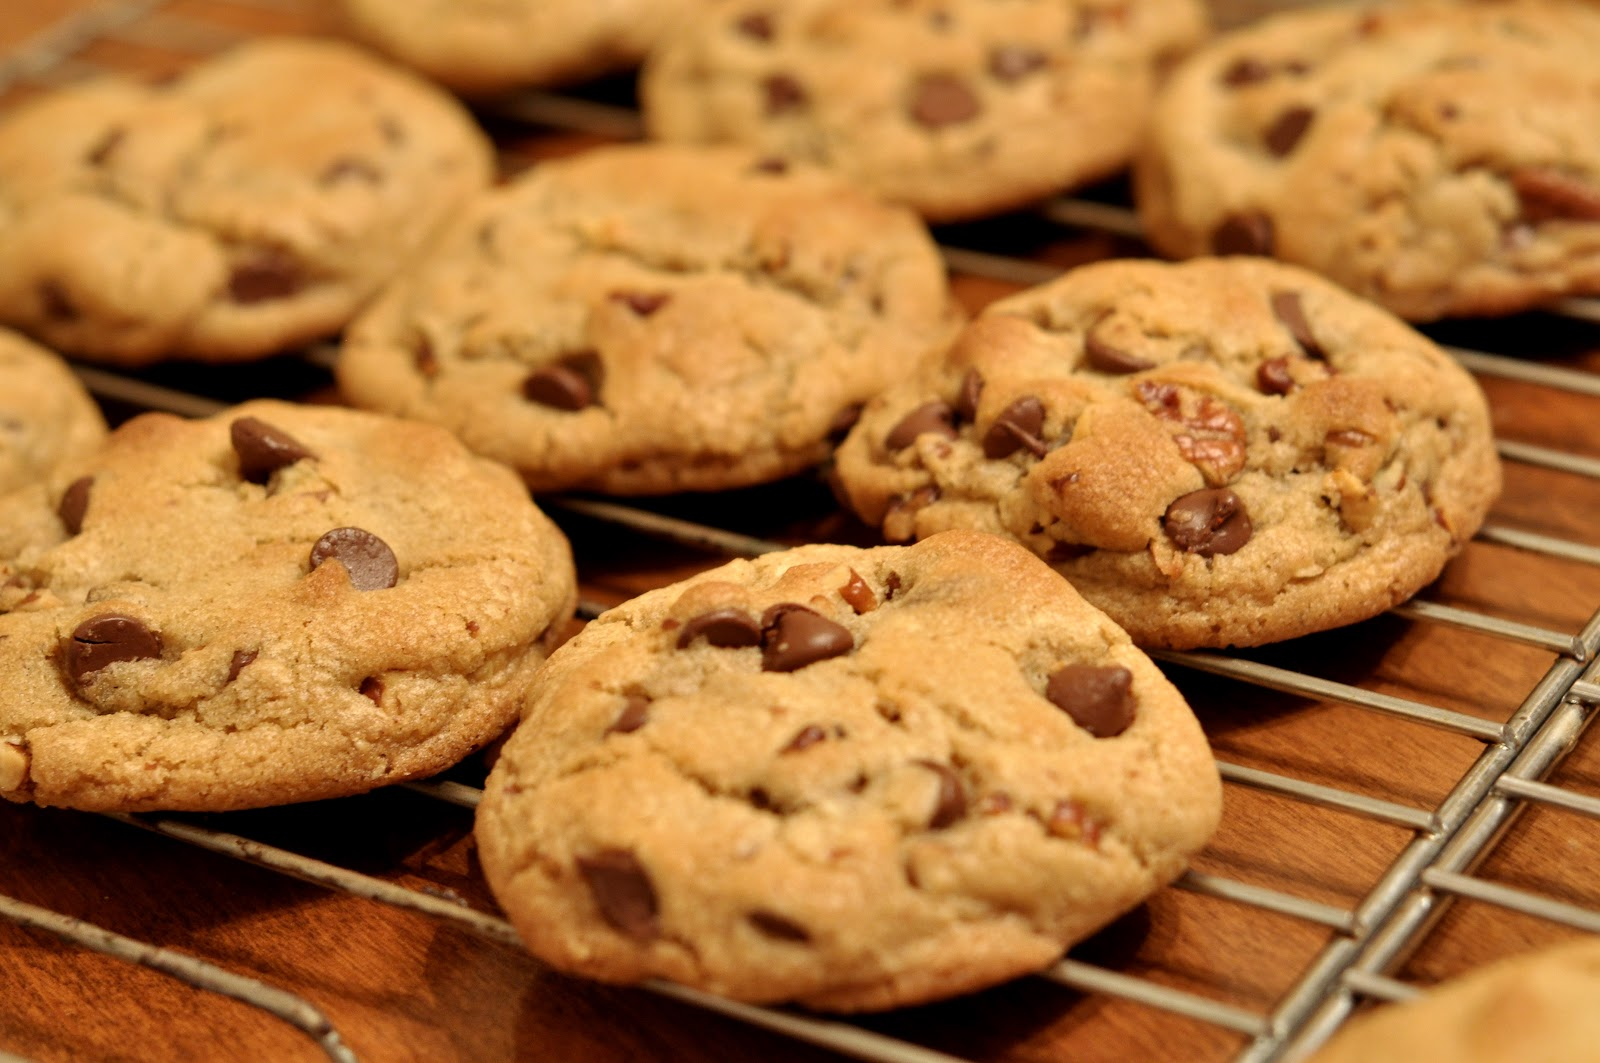 https://upload.wikimedia.org/wikipedia/commons/b/b9/Chocolate_Chip_Cookies_-_kimberlykv.jpg